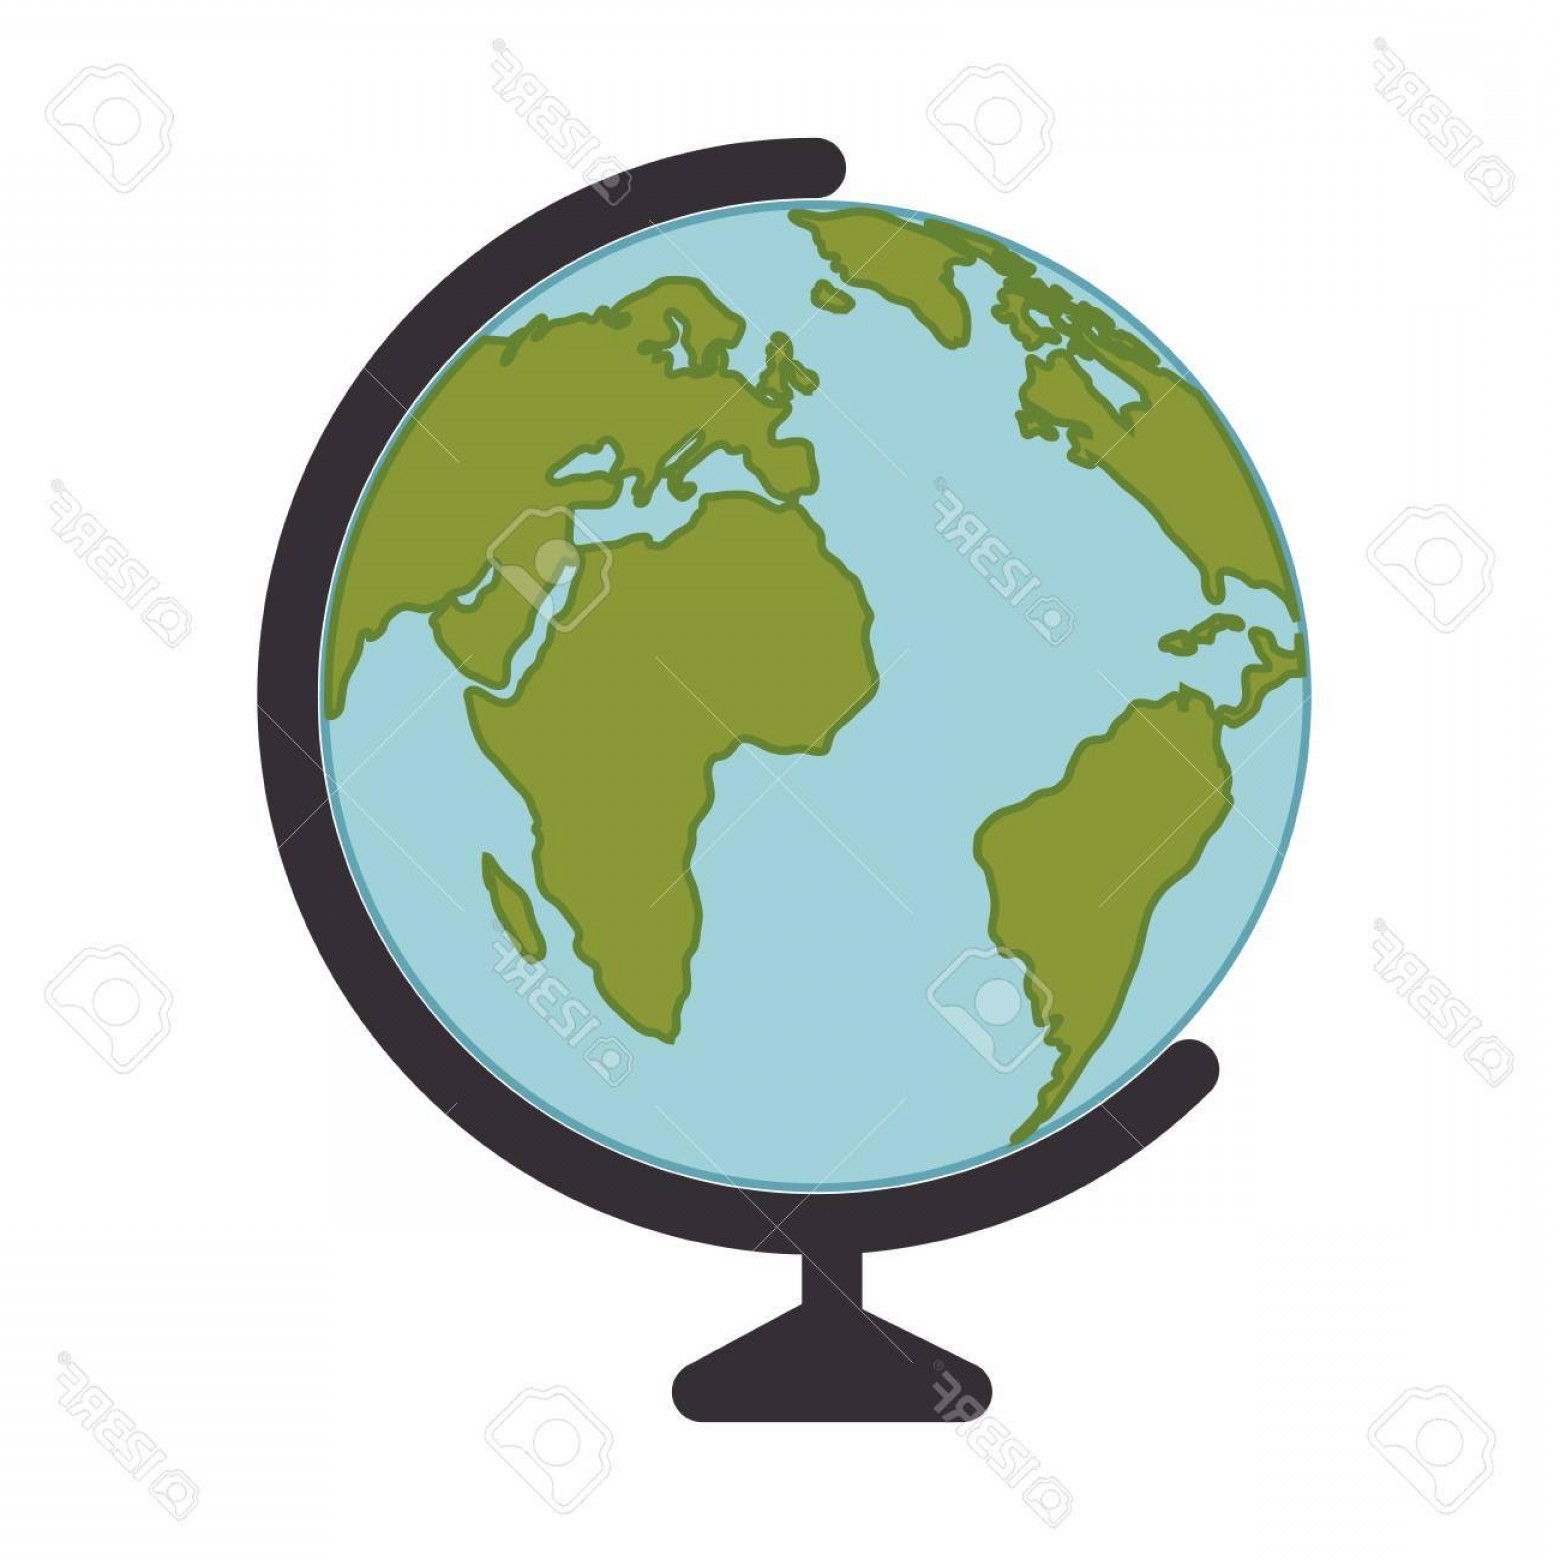 Vector Globe Countries: Photostock Vector Planet Earth Global Globe Countries Education Continent Ocean Geography Vector Illustration